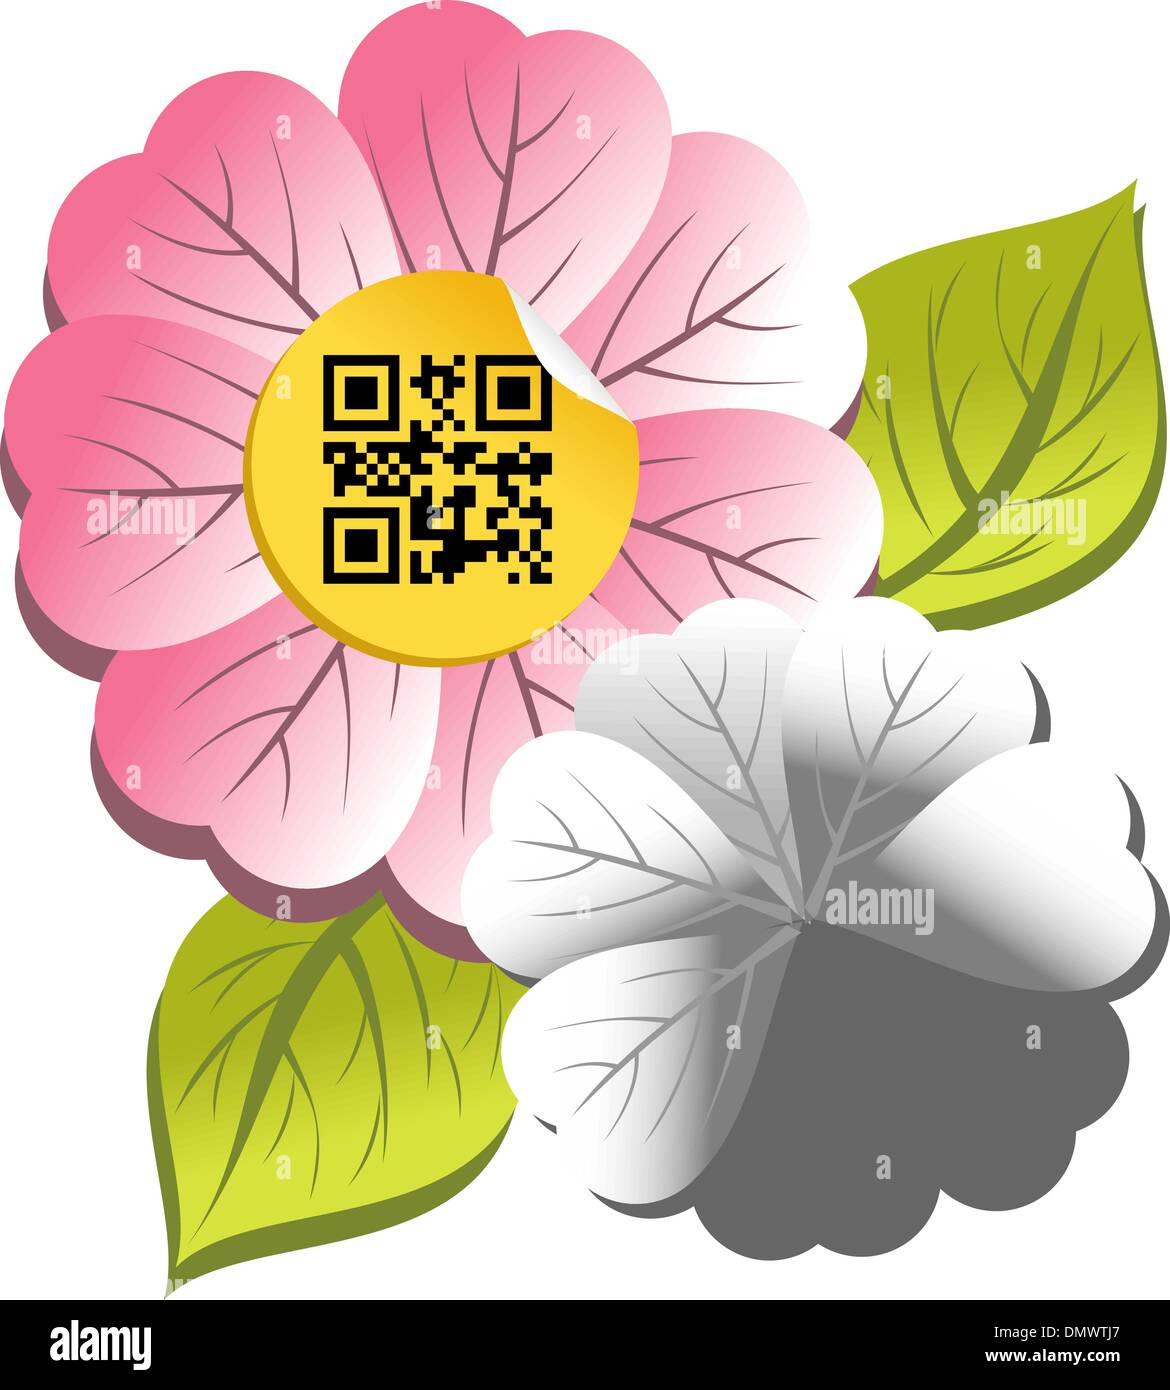 Spring time flower with qr code label - Stock Image